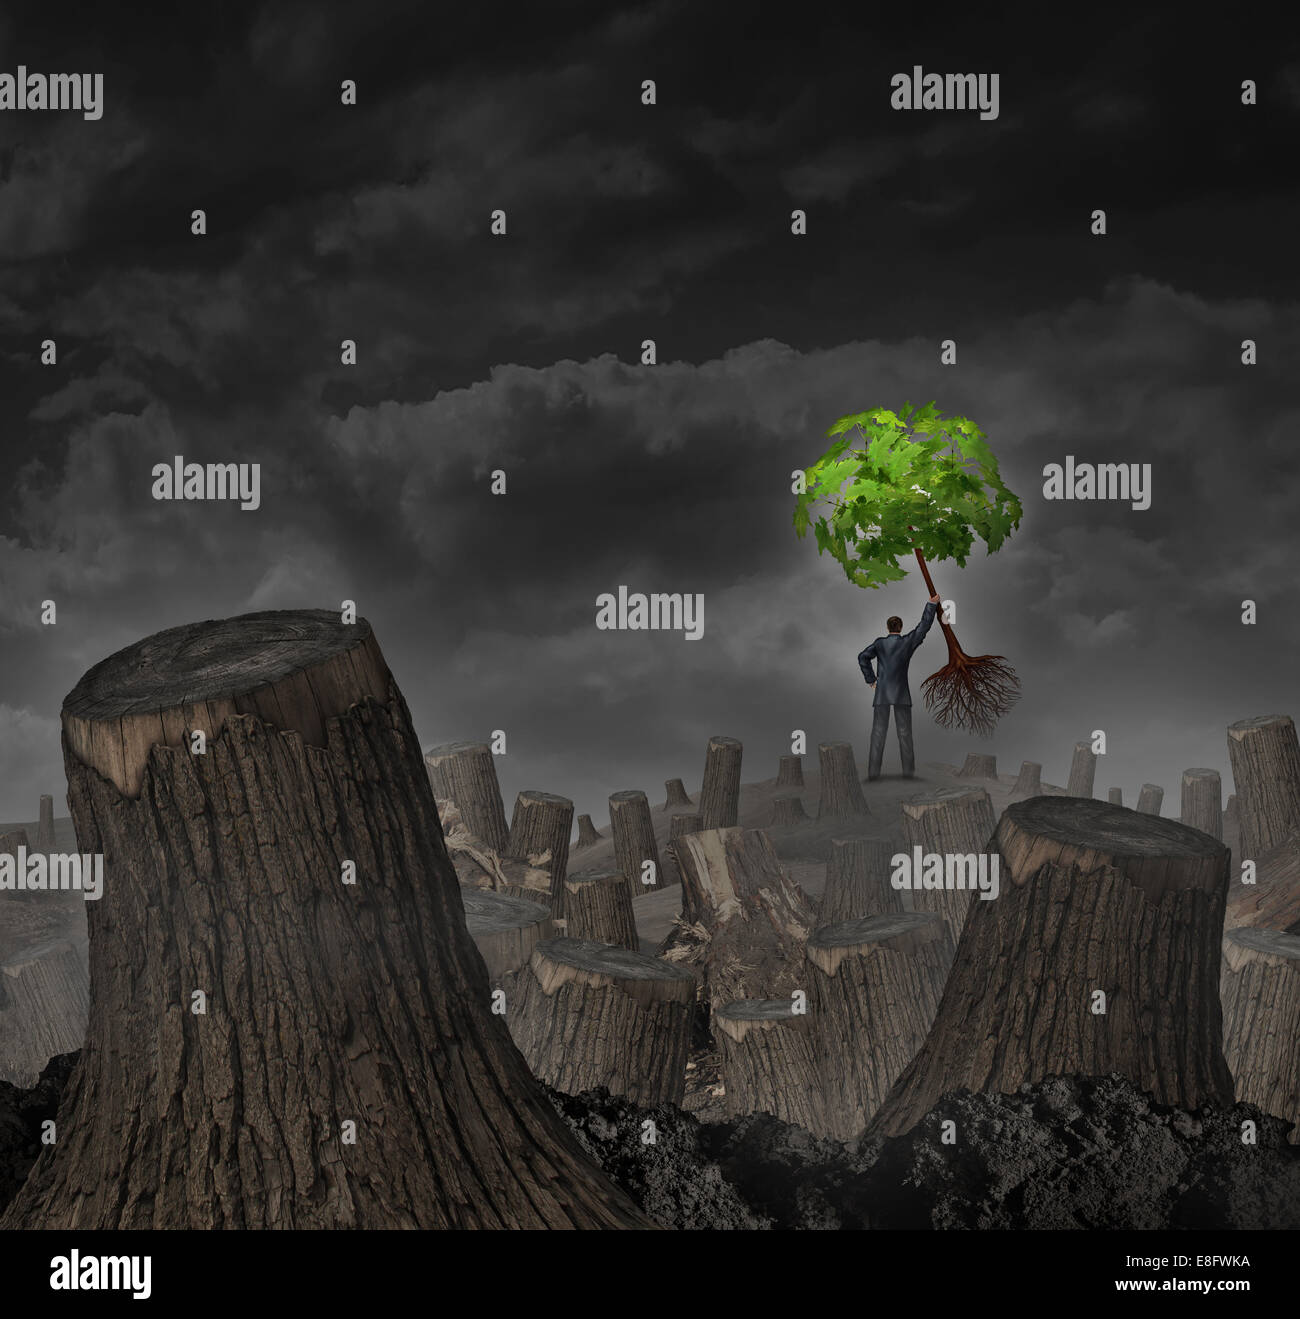 Disaster plan concept as a person standing on a hill in a dead forest with cut trees holding up a healthy young - Stock Image